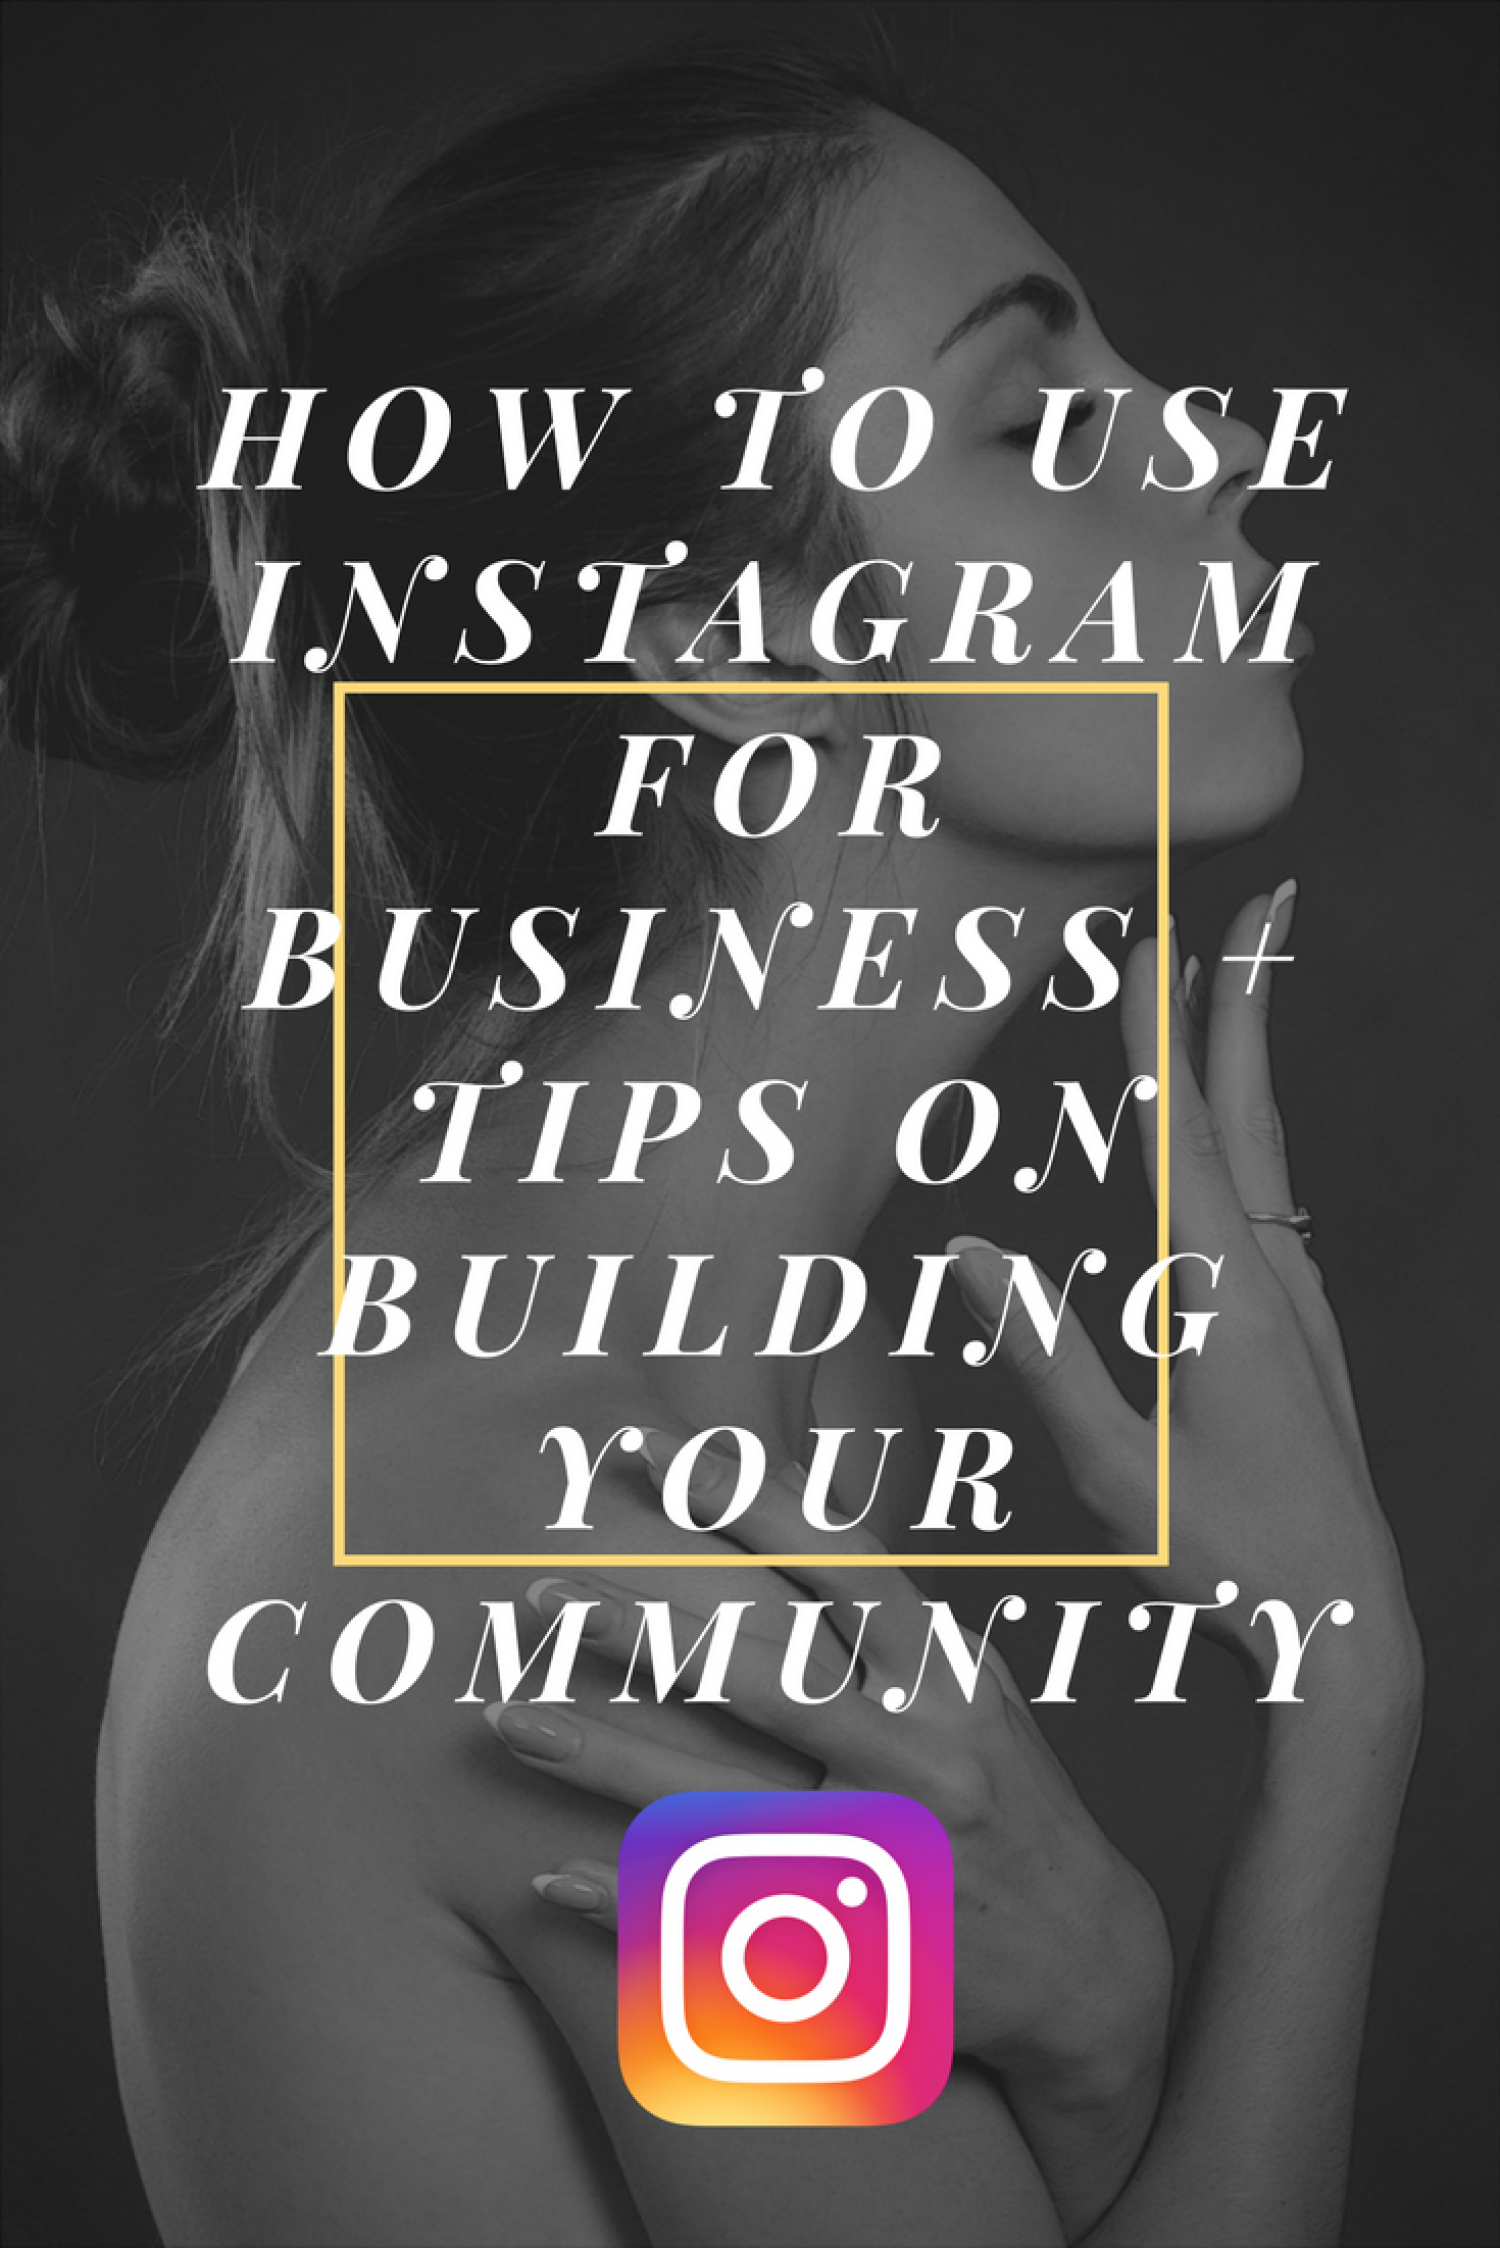 How to Use Instagram for Business + Tips on Building Your Community Infographic